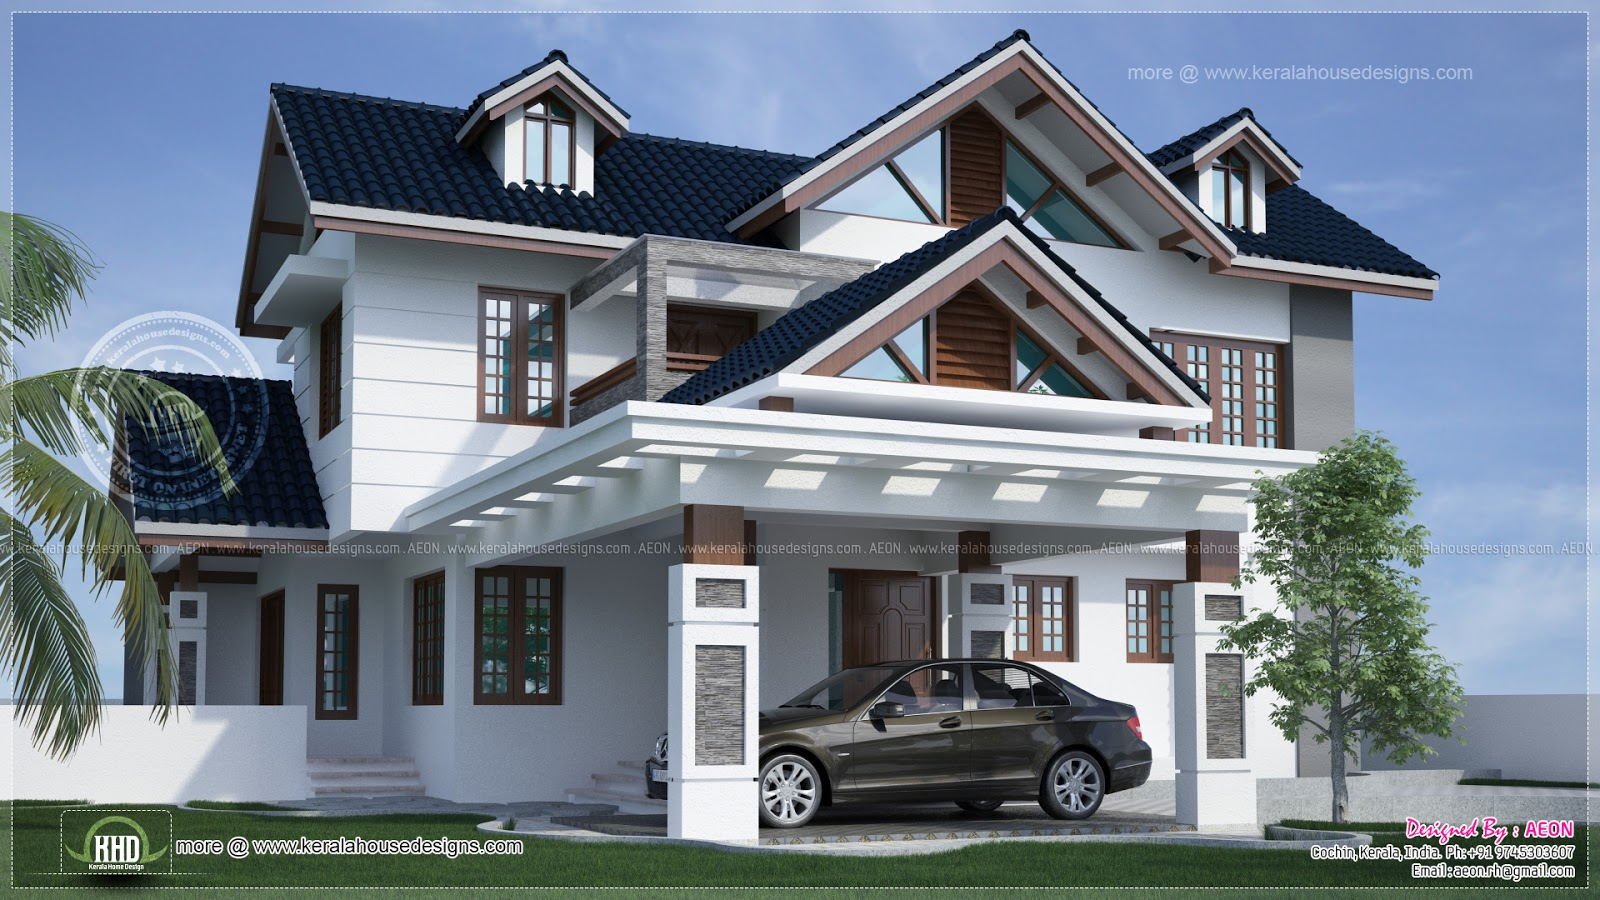 Front Elevation In Kerala : River side kerala style residence exterior design home